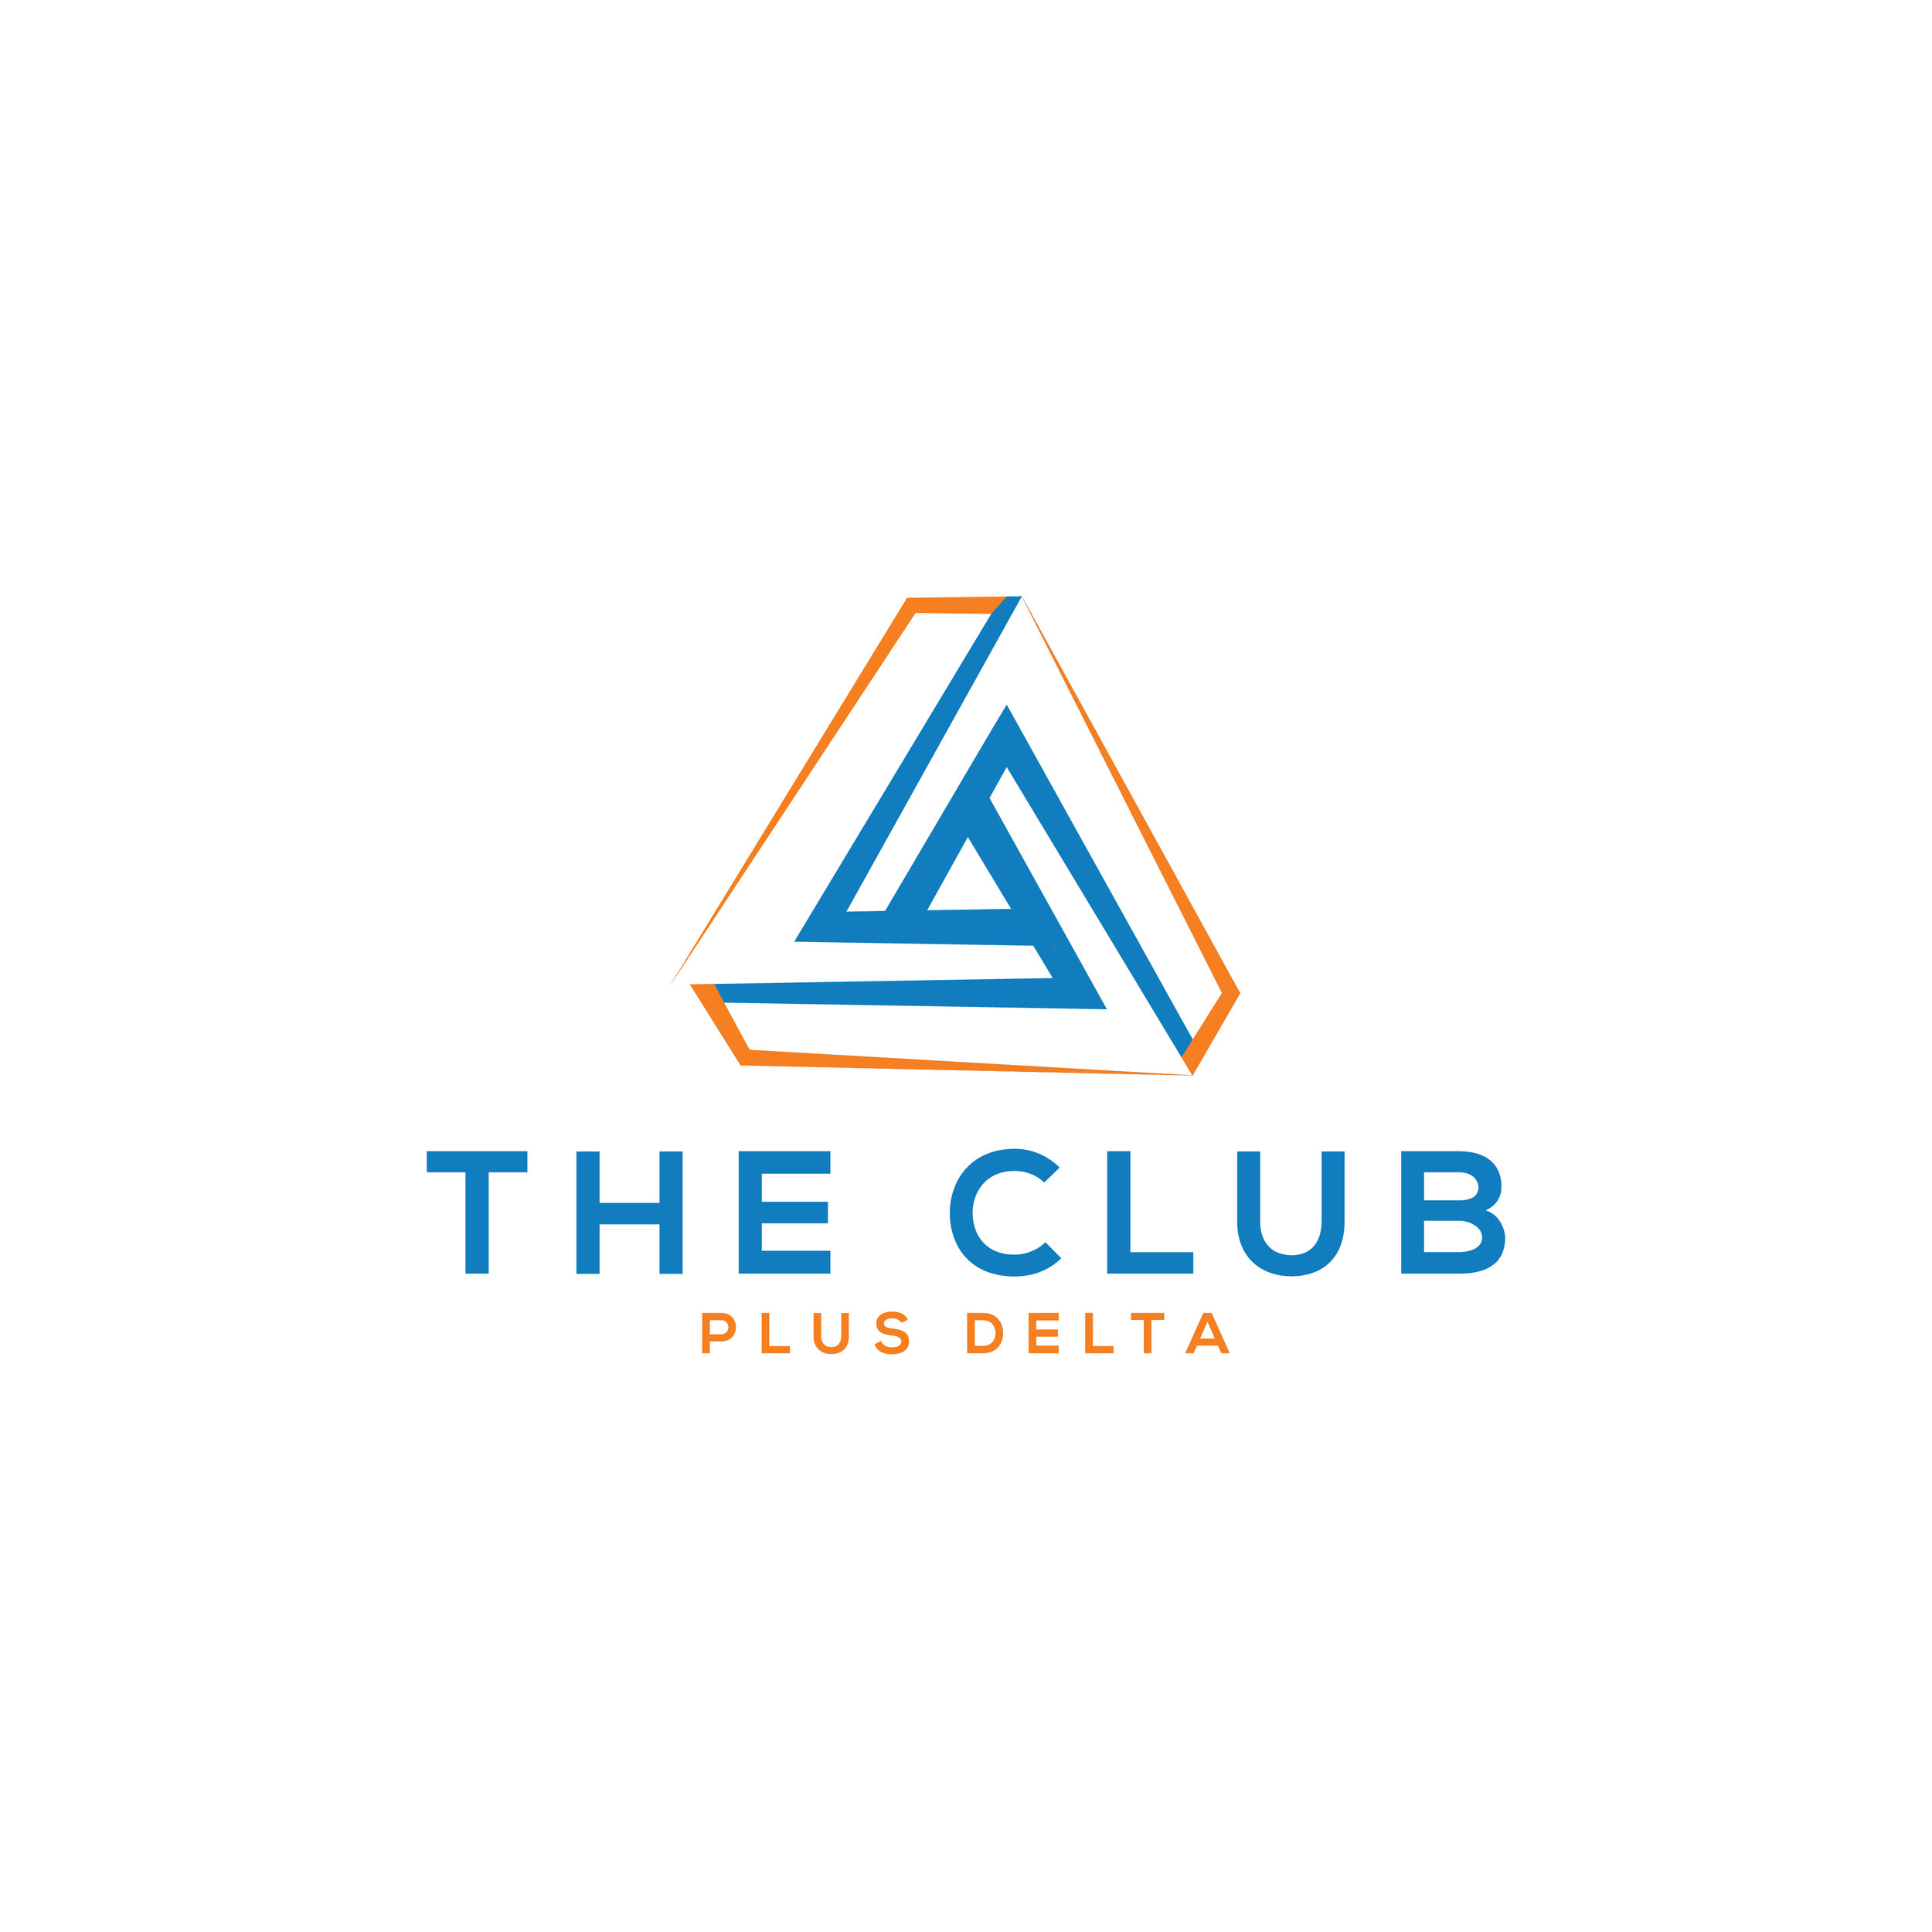 0113_the club_R_logo-03.jpg